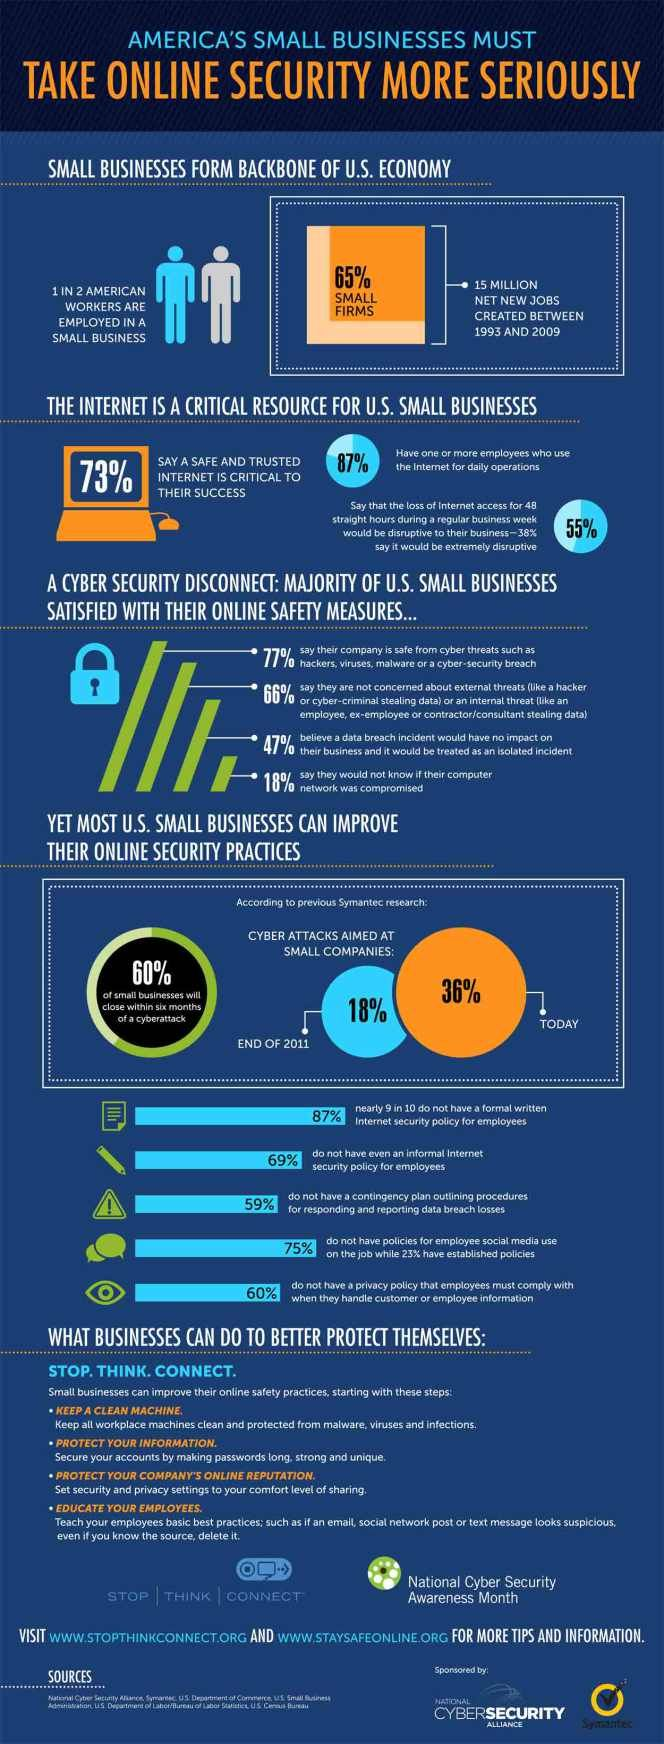 Why Small Businesses Should Take Online Security More Seriously Infographic Cyber Security Awareness Online Security Computer Security